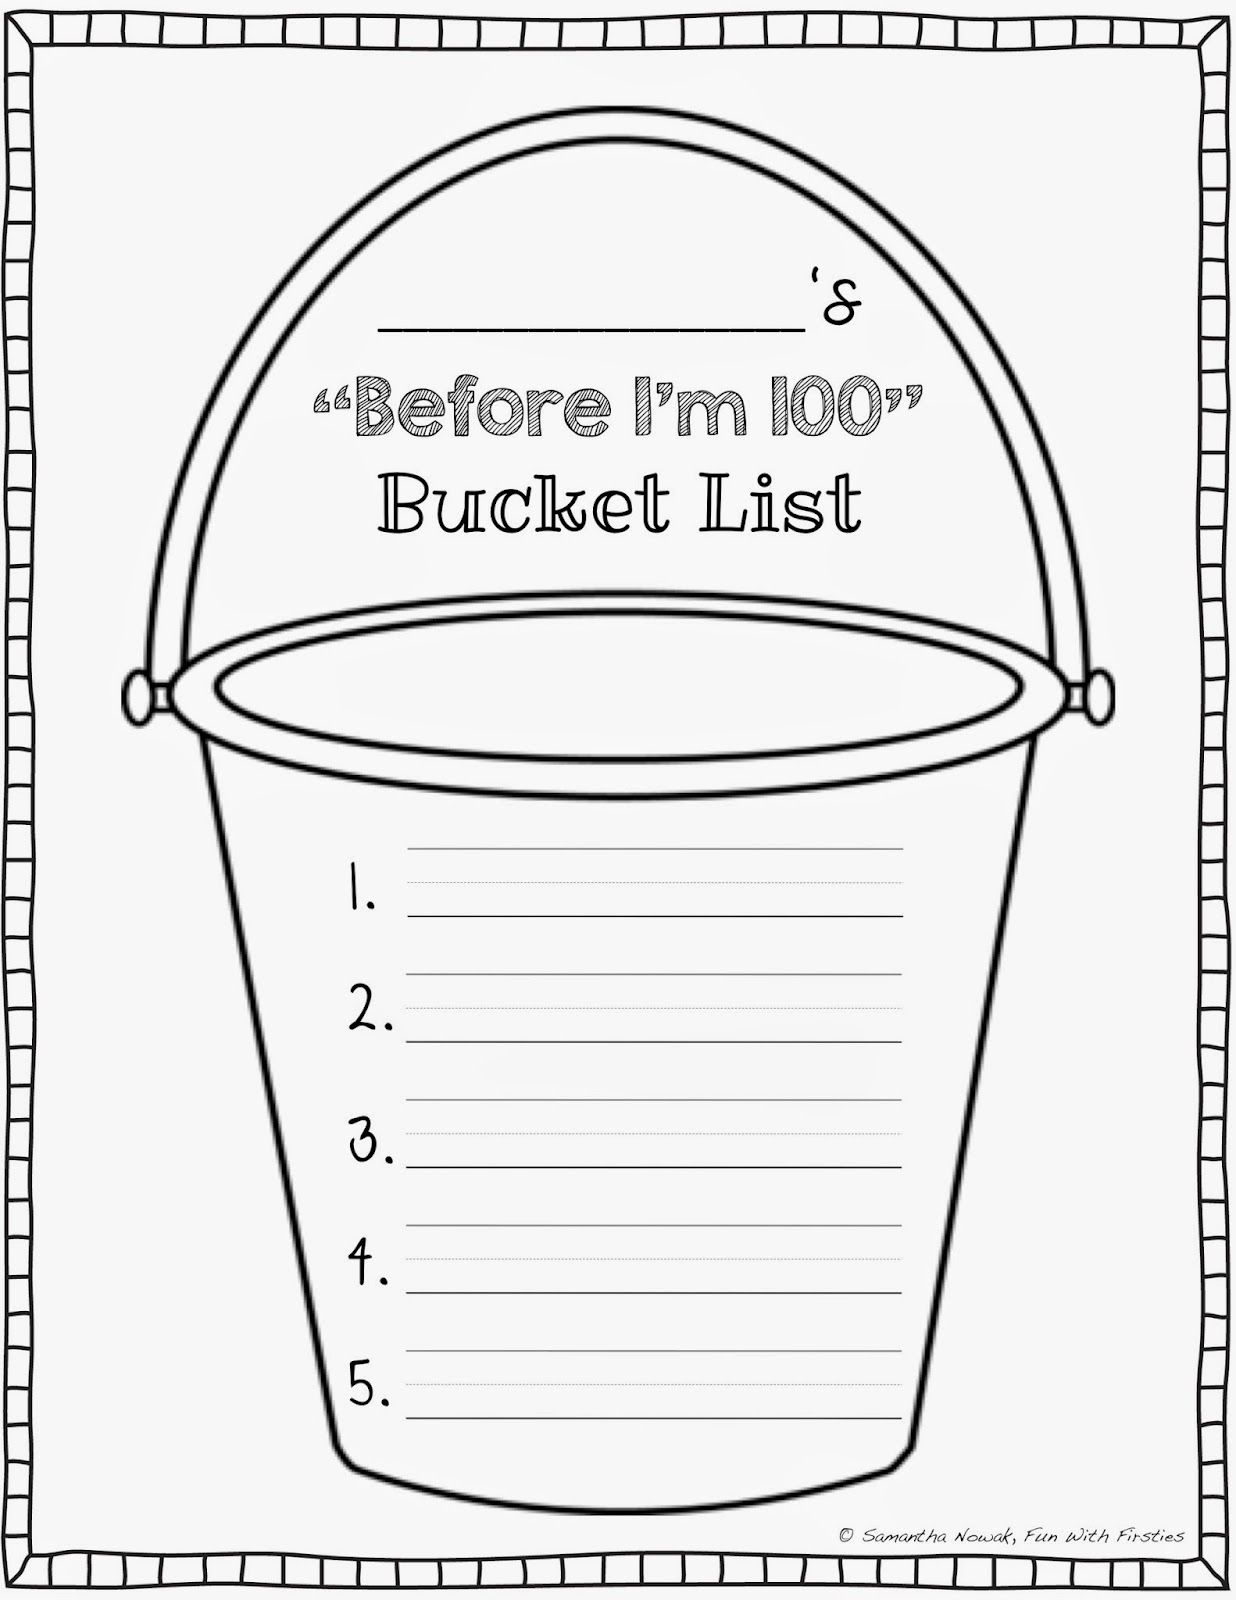 The 100th day of school free worksheets worksheets and activities fun with firsties the 100th day of school ee worksheet activity fandeluxe Images